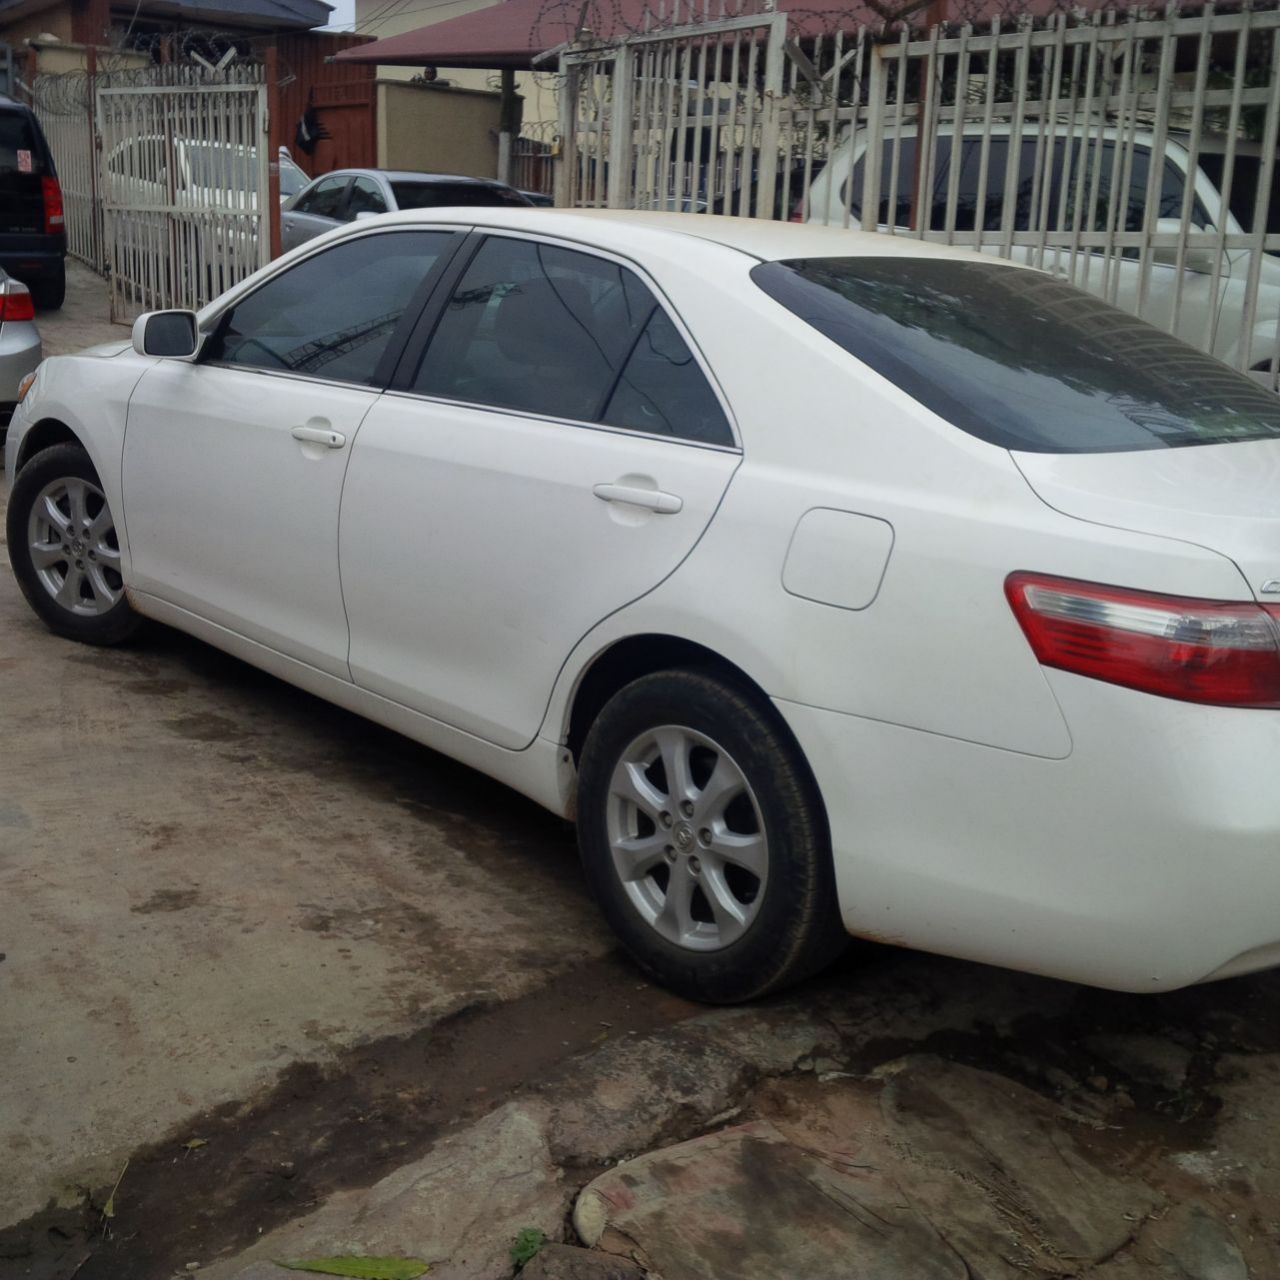 brand new toyota camry muscle yaris trd sportivo manual 2012 sold white 2007 autos nigeria